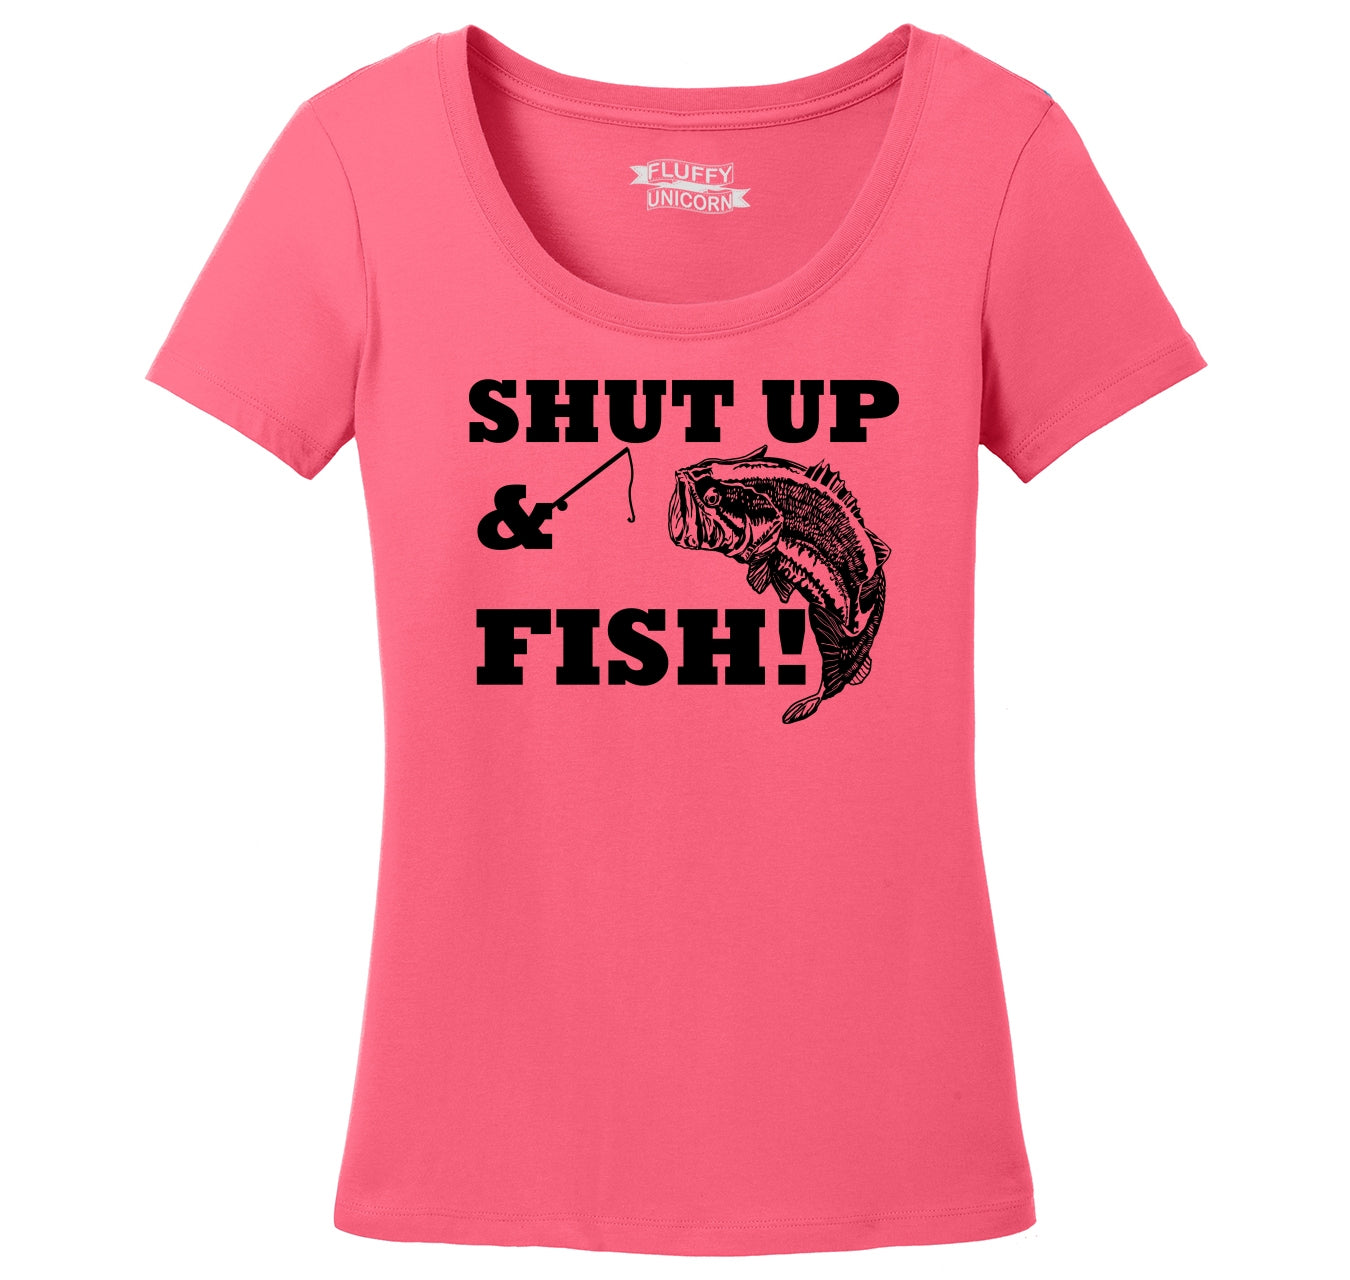 411068c57 Shut Up & Fish Funny Country Song T Shirt Fishing Trip Redneck Tee Ladies  Scoop Neck